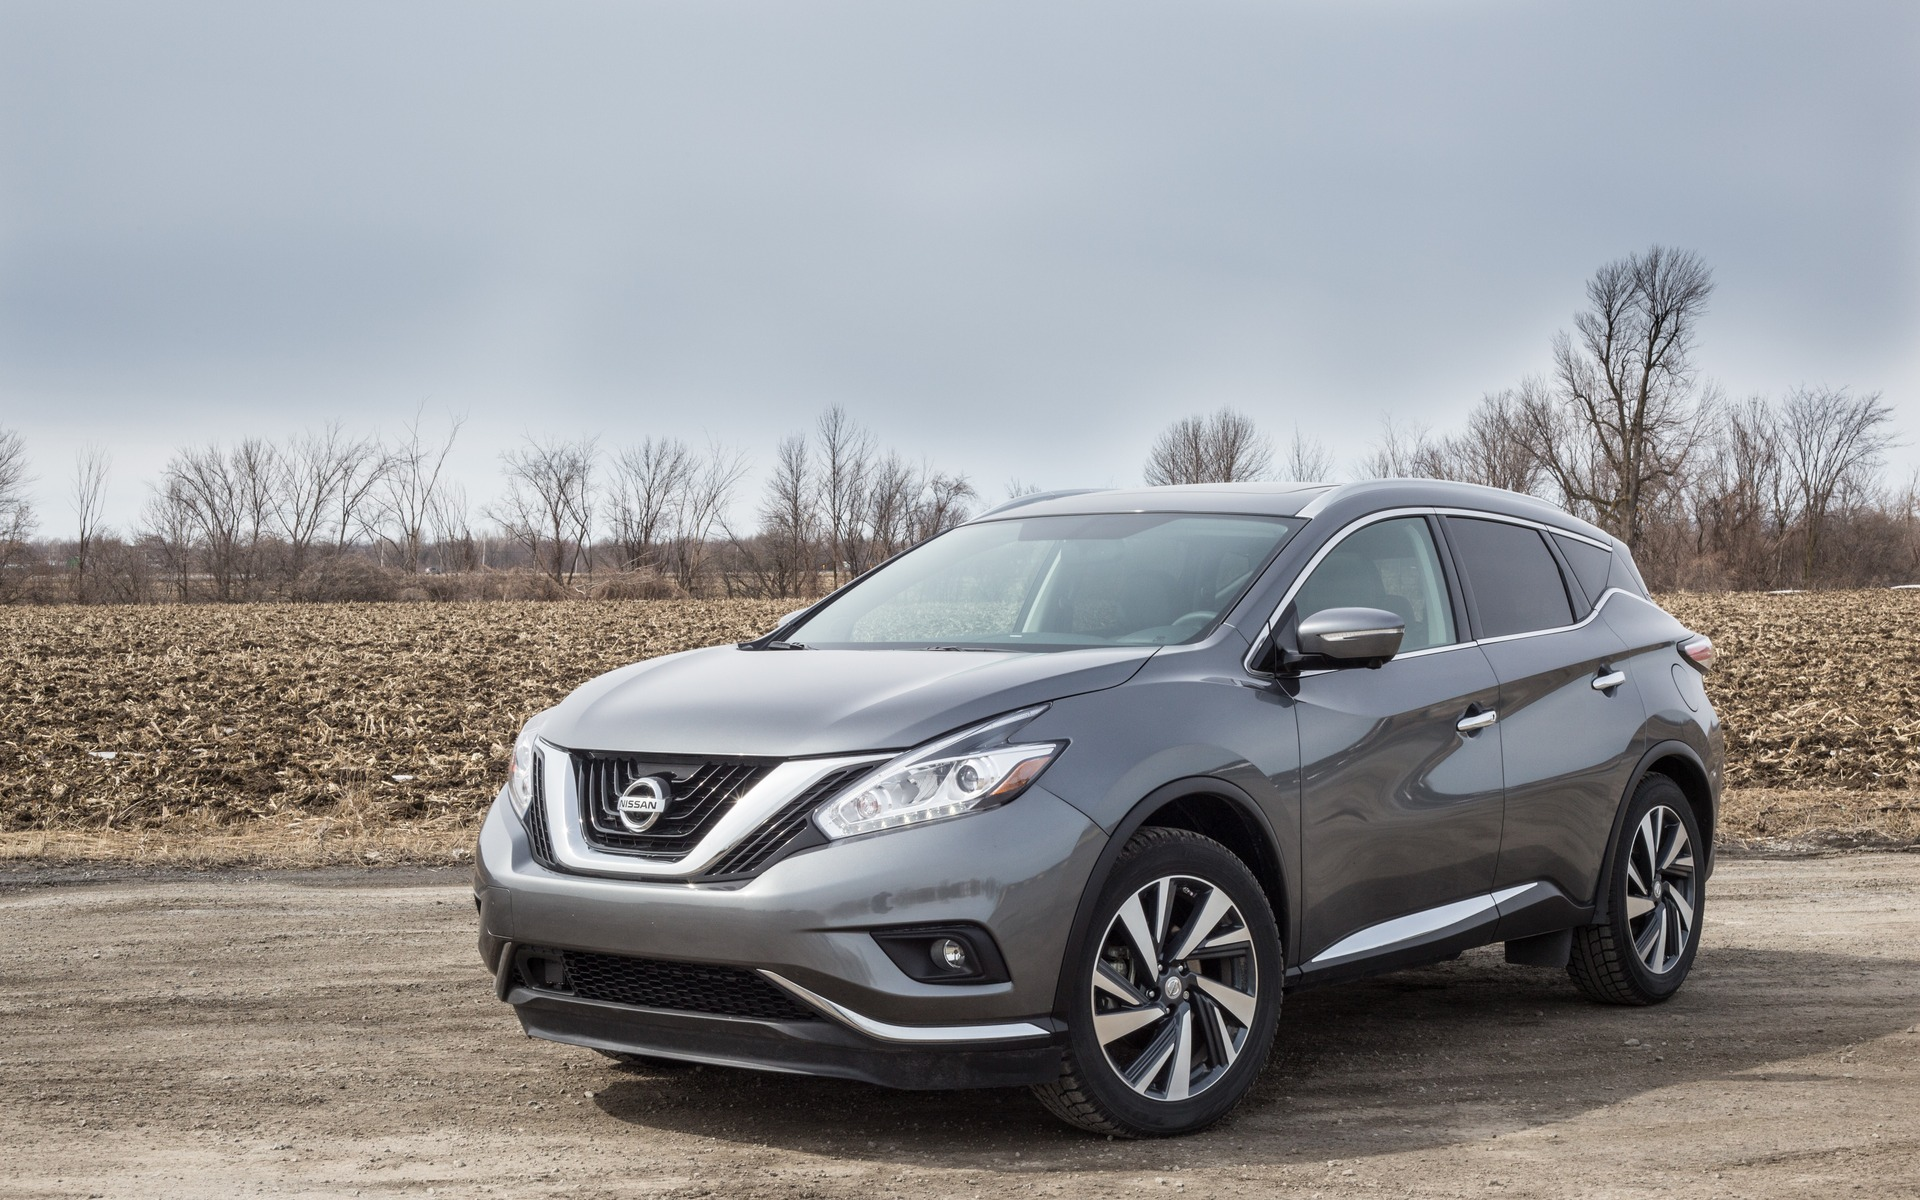 2017 Nissan Murano Platinum >> 2016 Nissan Murano S FWD Specifications - The Car Guide